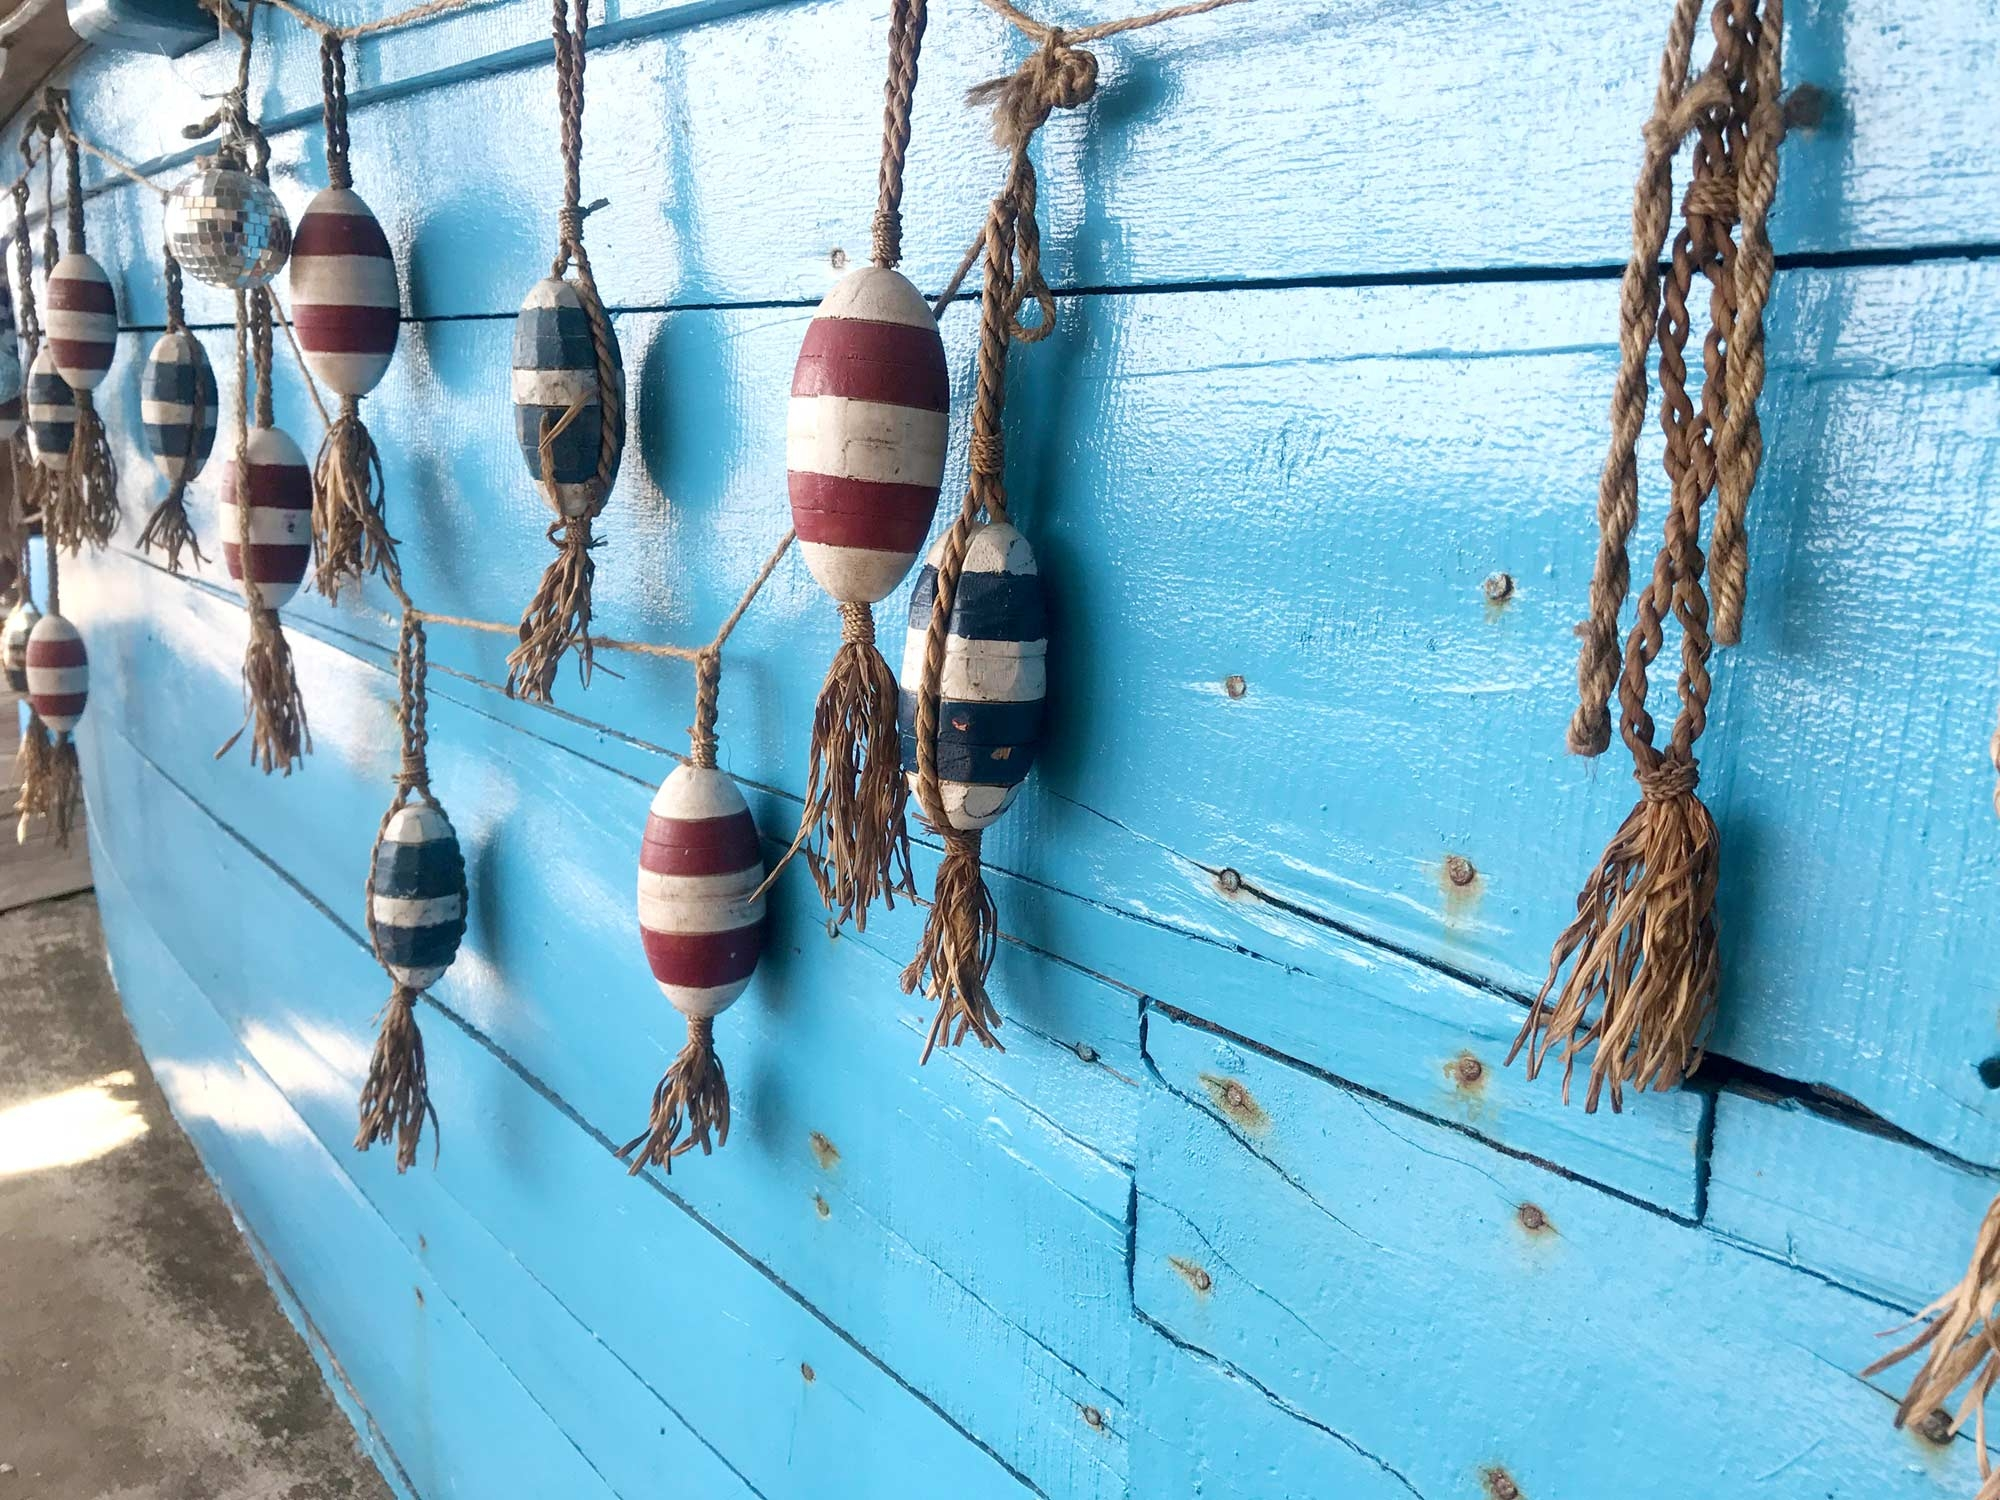 Striped buoys hung against a vibrant blue wall